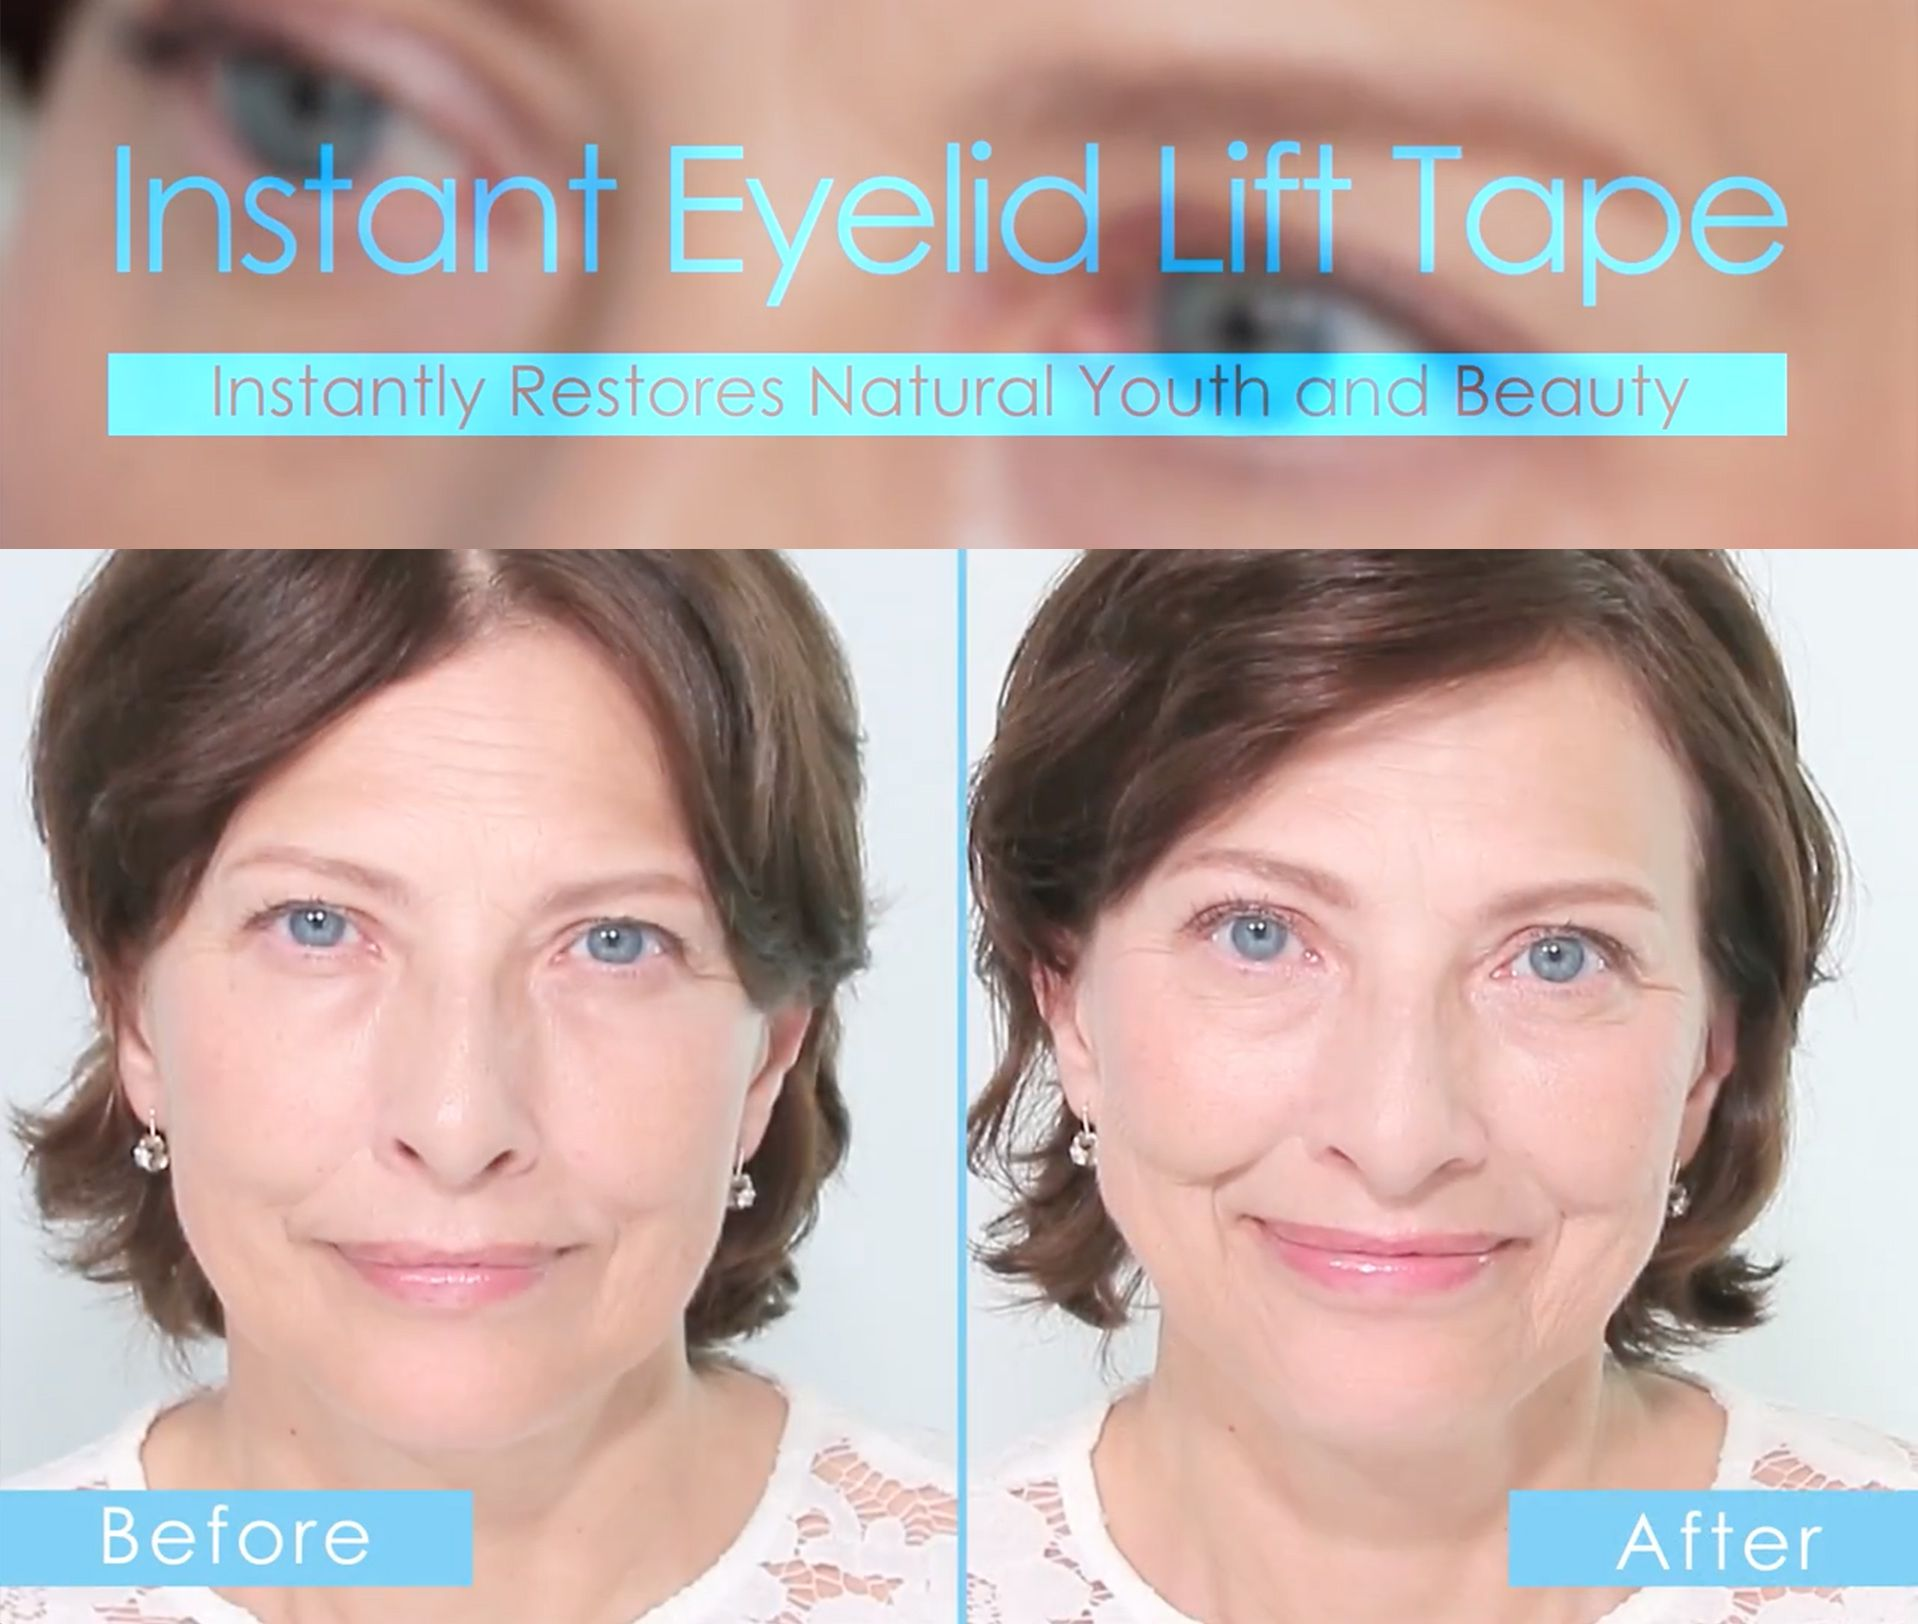 How to even out your eyelids without surgery youtube - There Is No Way To Prevent Eyelid Drooping But Instant Eyelid Lift Tape Can Make Your Eyes Look